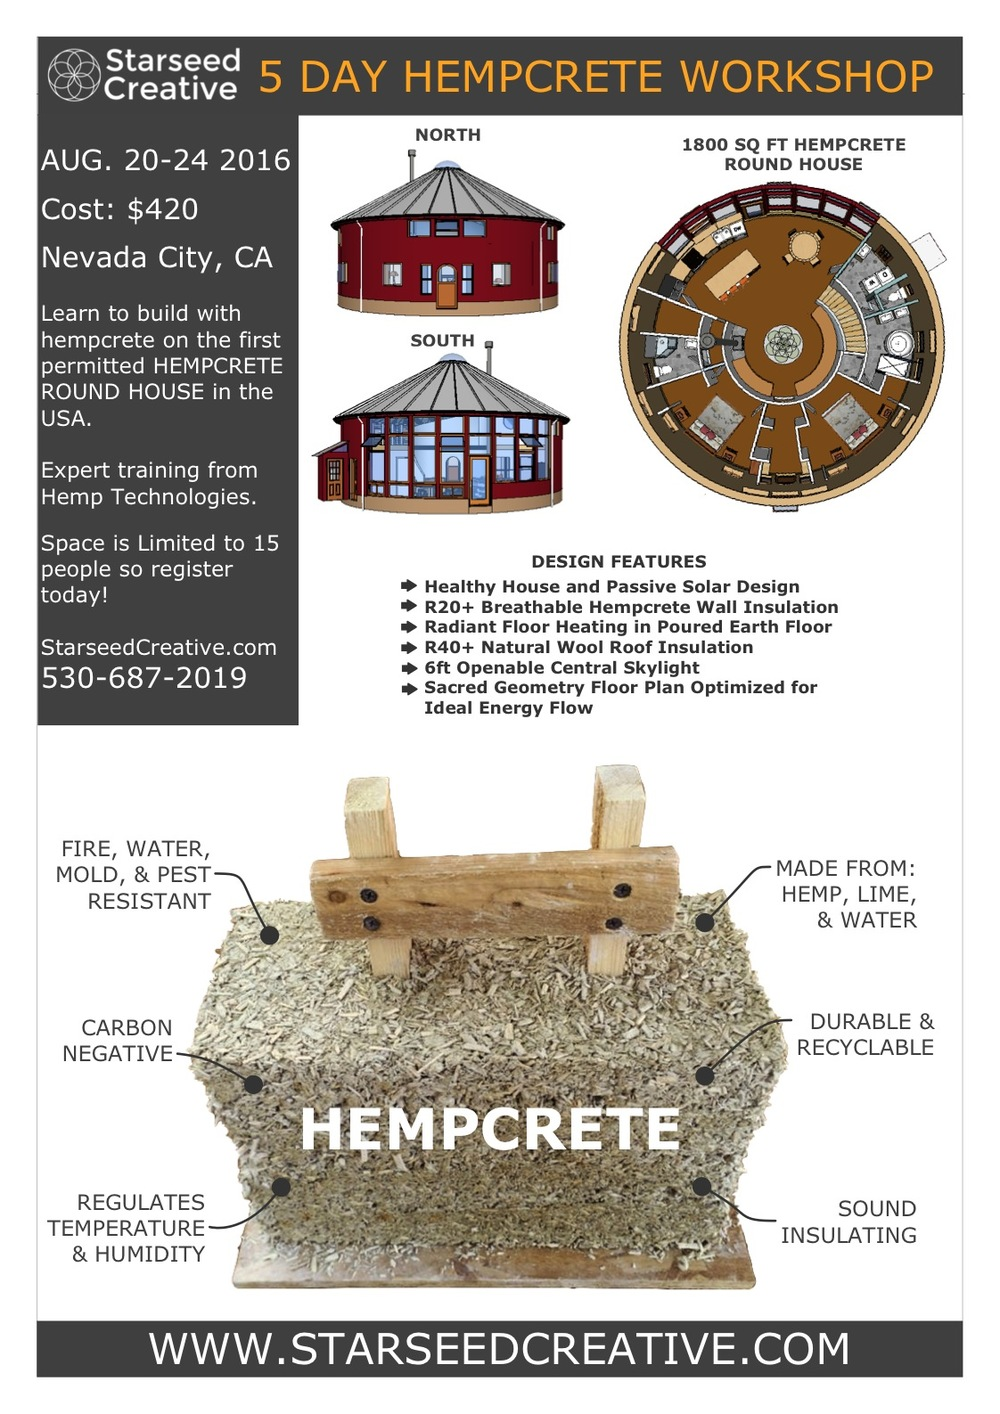 40' Hempcrete Workshop Flier.jpg